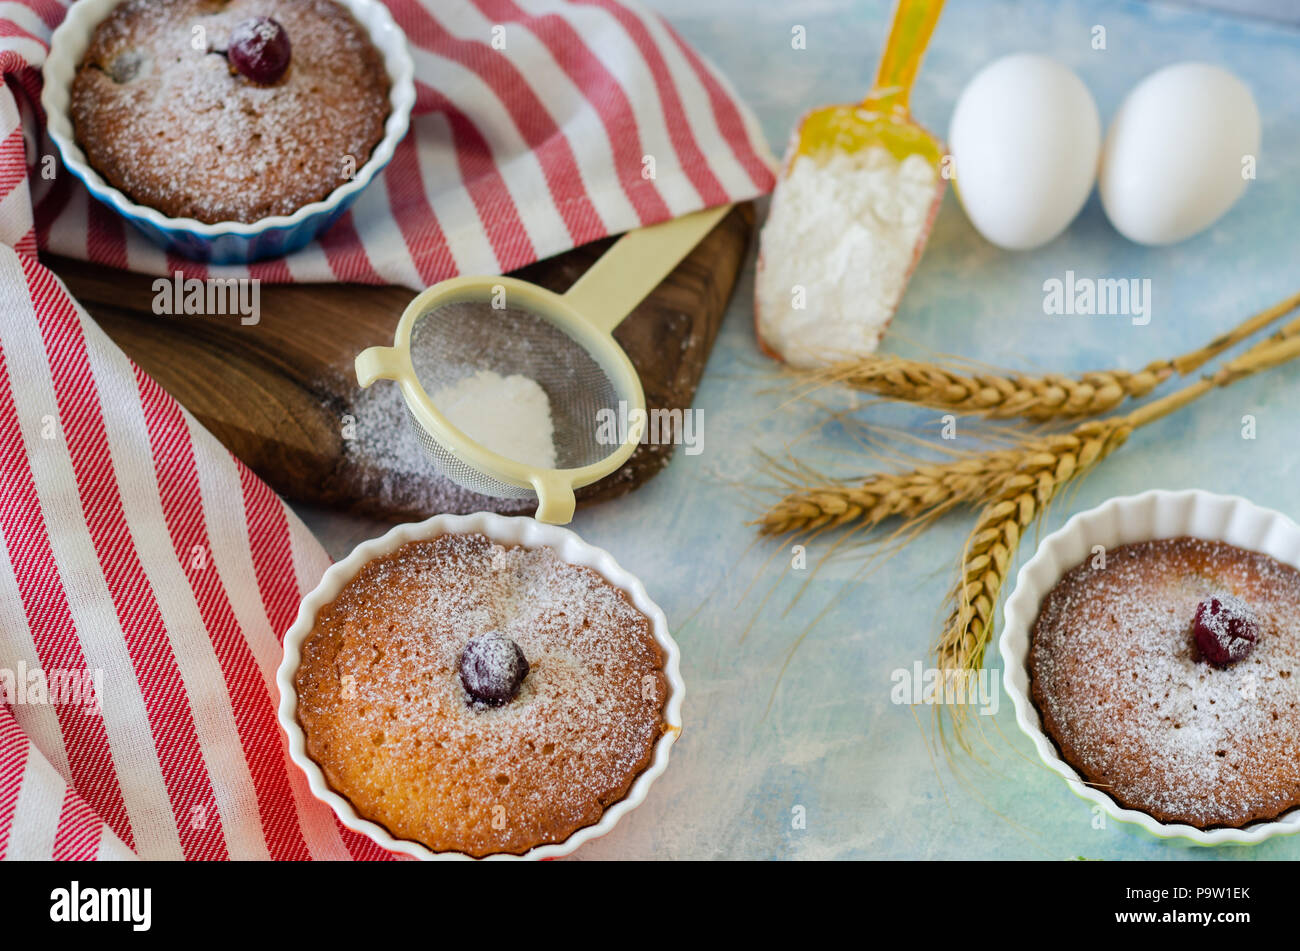 Cakes with cerries on a table in small porcelain cups .There are  eggs, flour, wheat, powdered sugar next to cakes. Stock Photo